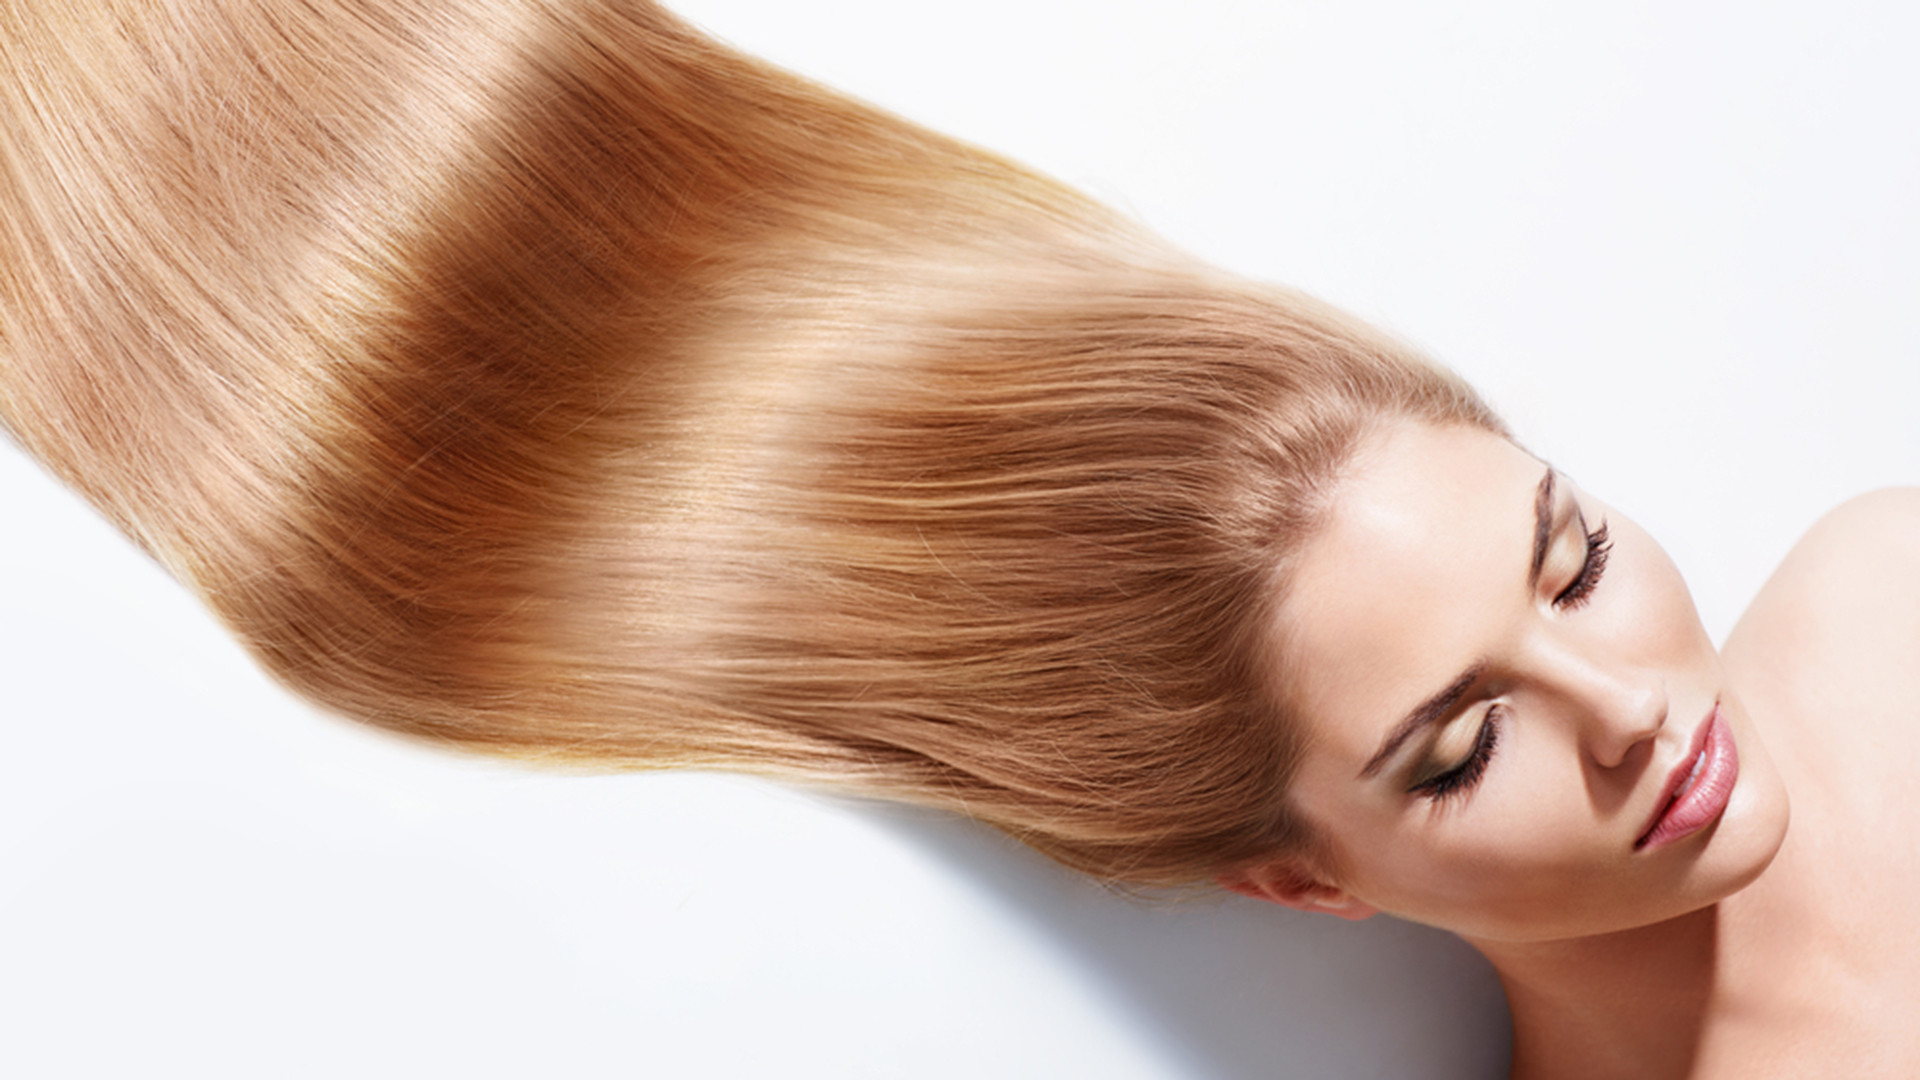 Best ideas about Hairstyle Commercial . Save or Pin Tape hair extensions & other shampoo mercial hair tips Now.